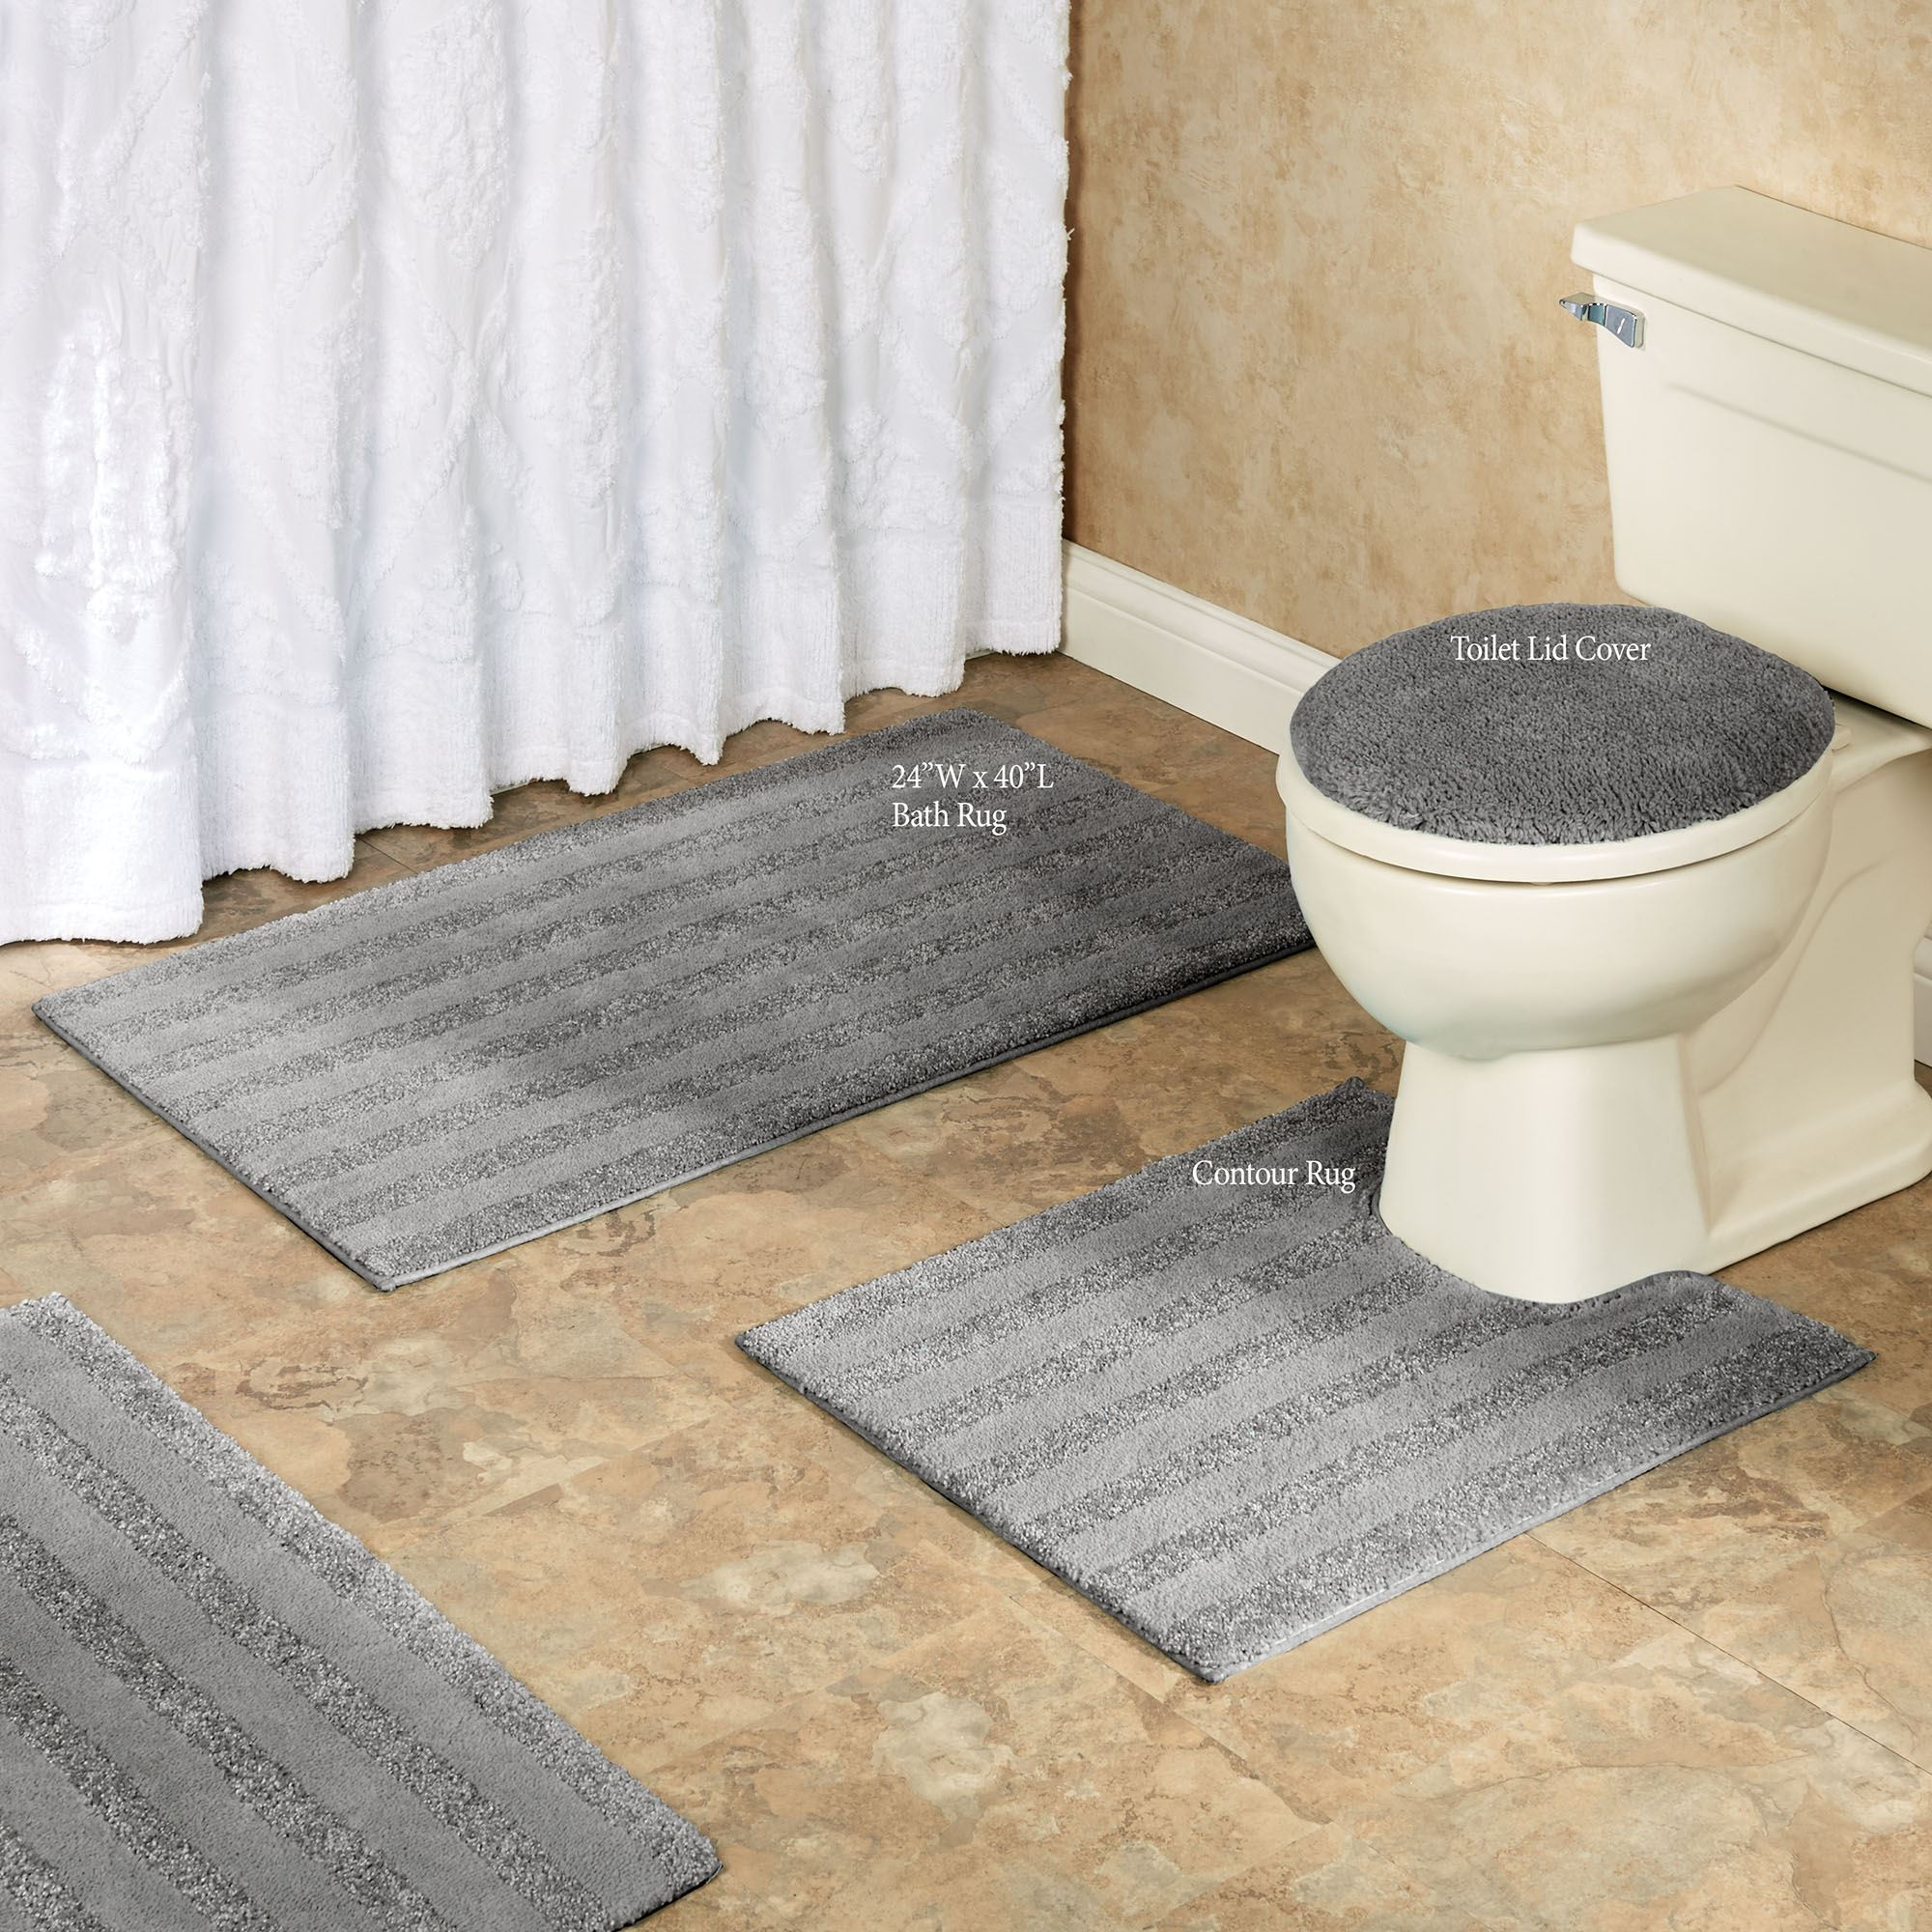 delivery next rugs design purple awesome hallway of from day attachment bathroom runner